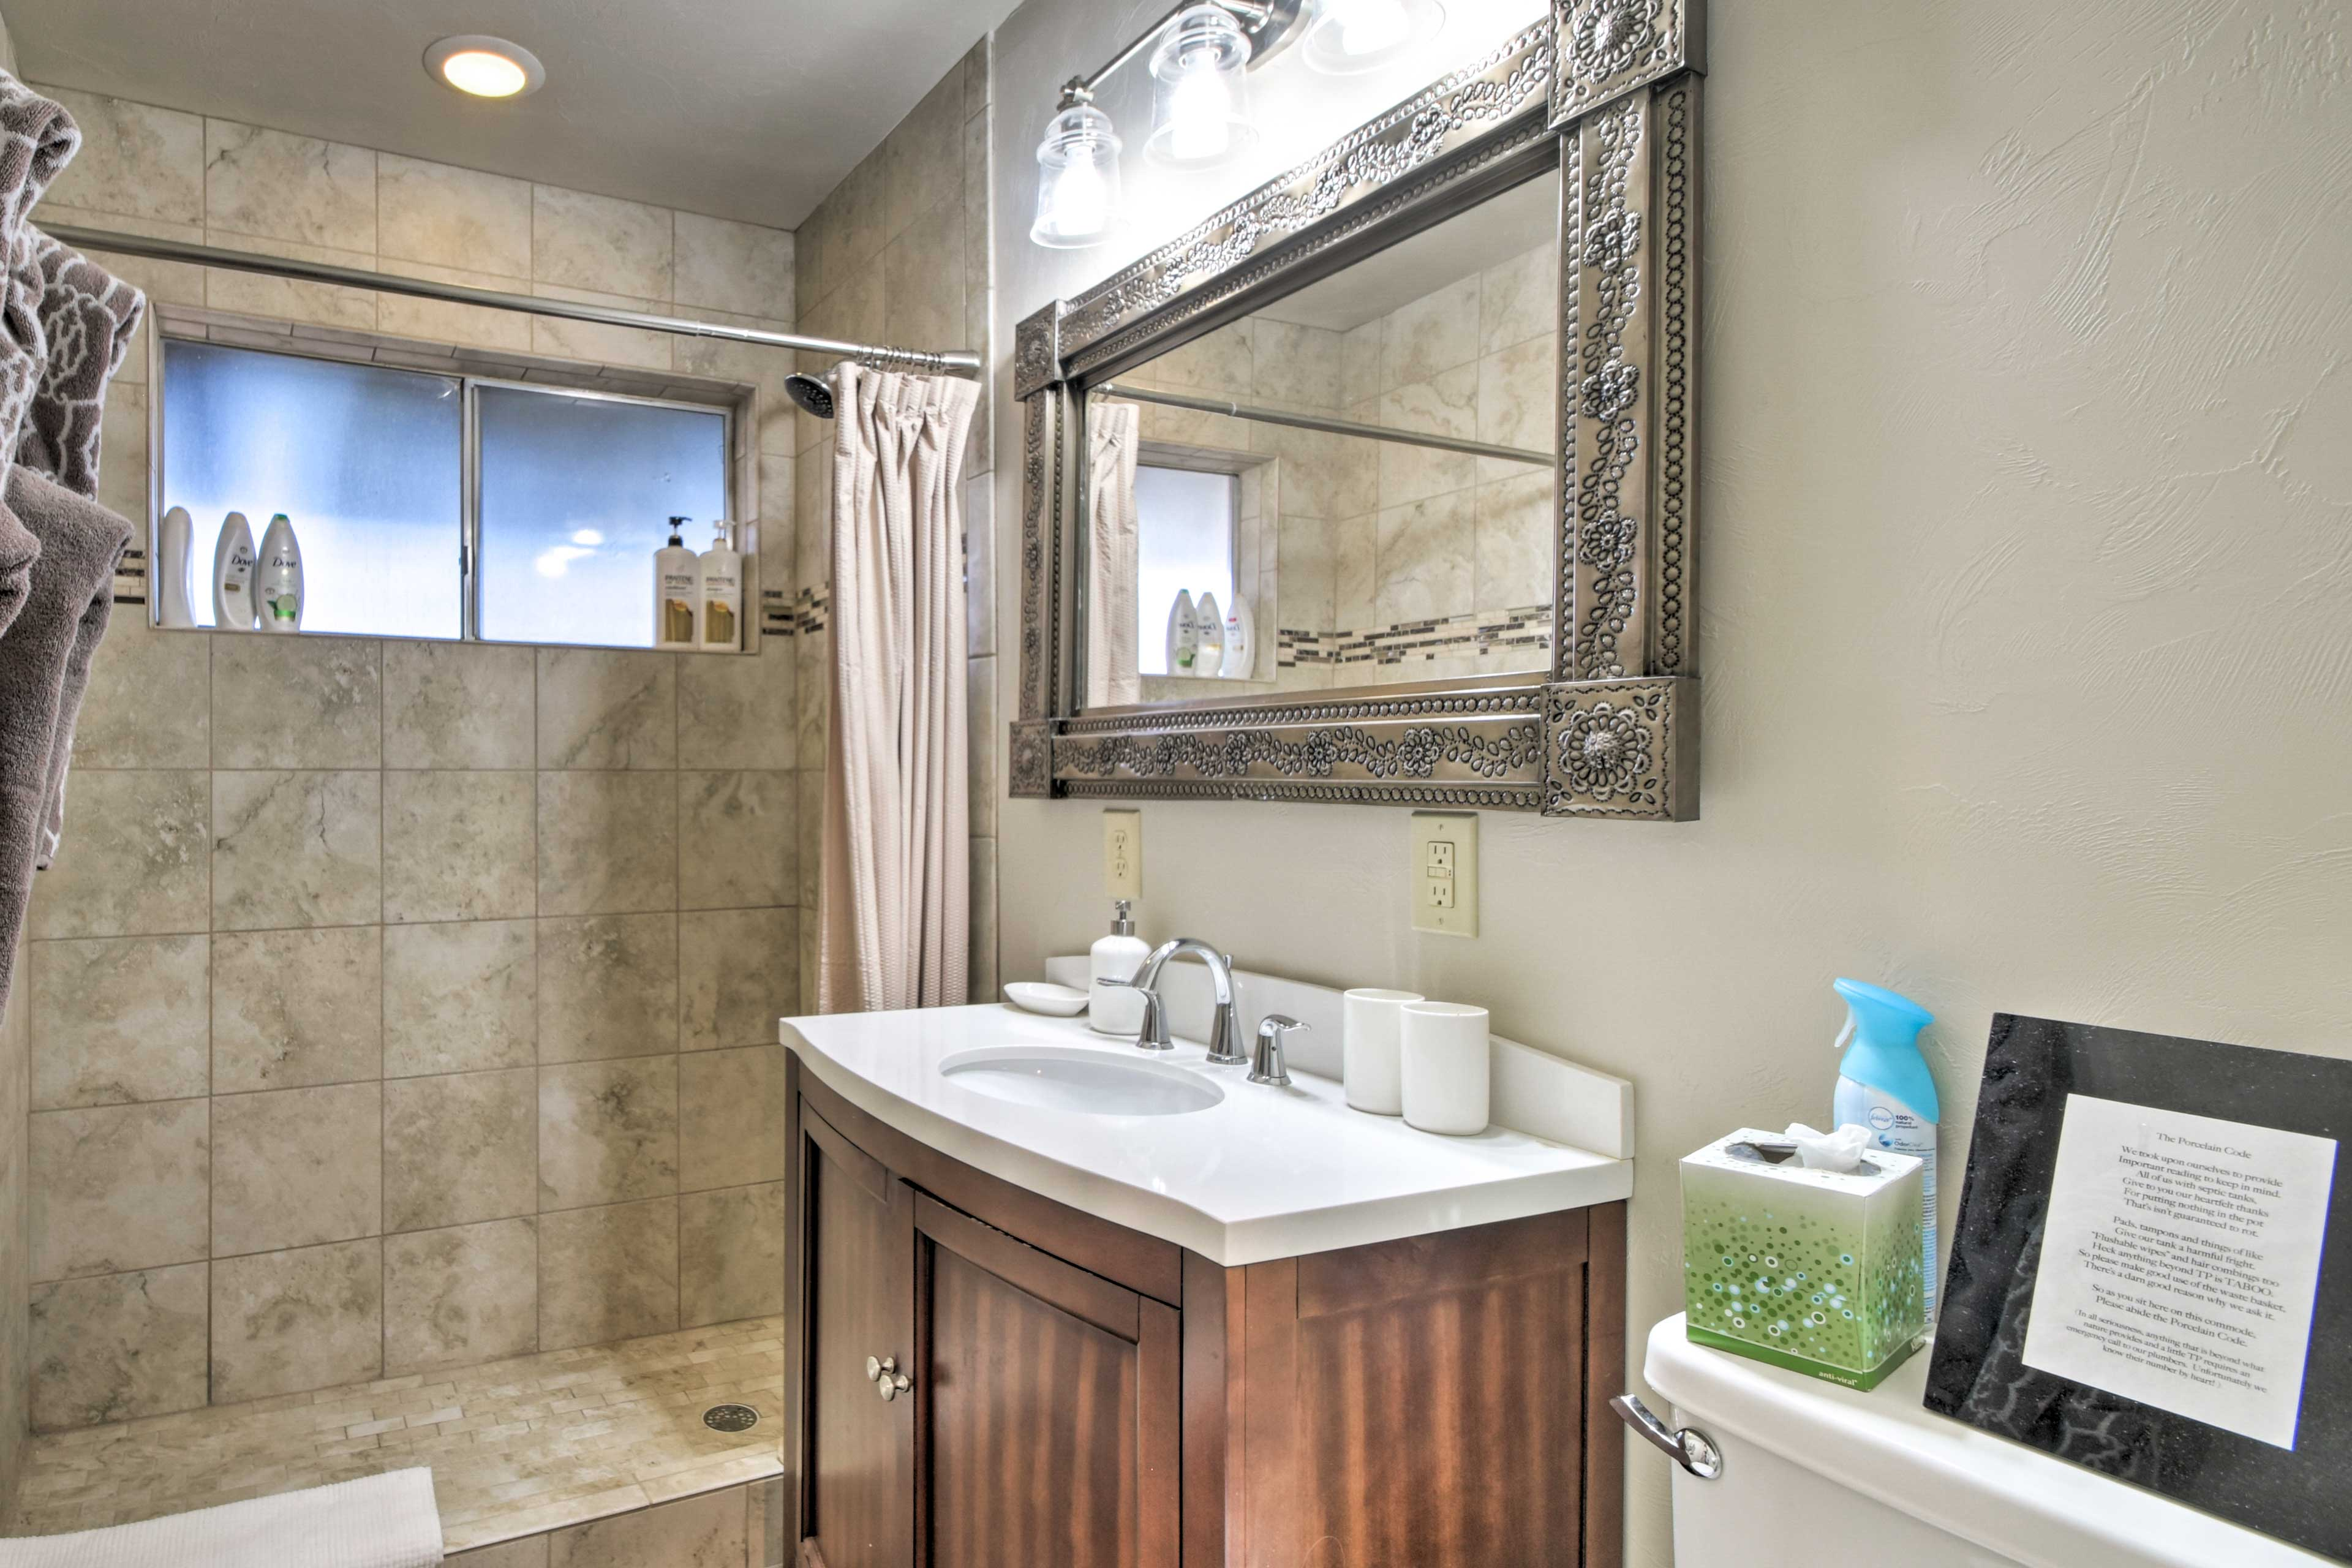 The bathrooms features complimentary toiletries and soft towels.